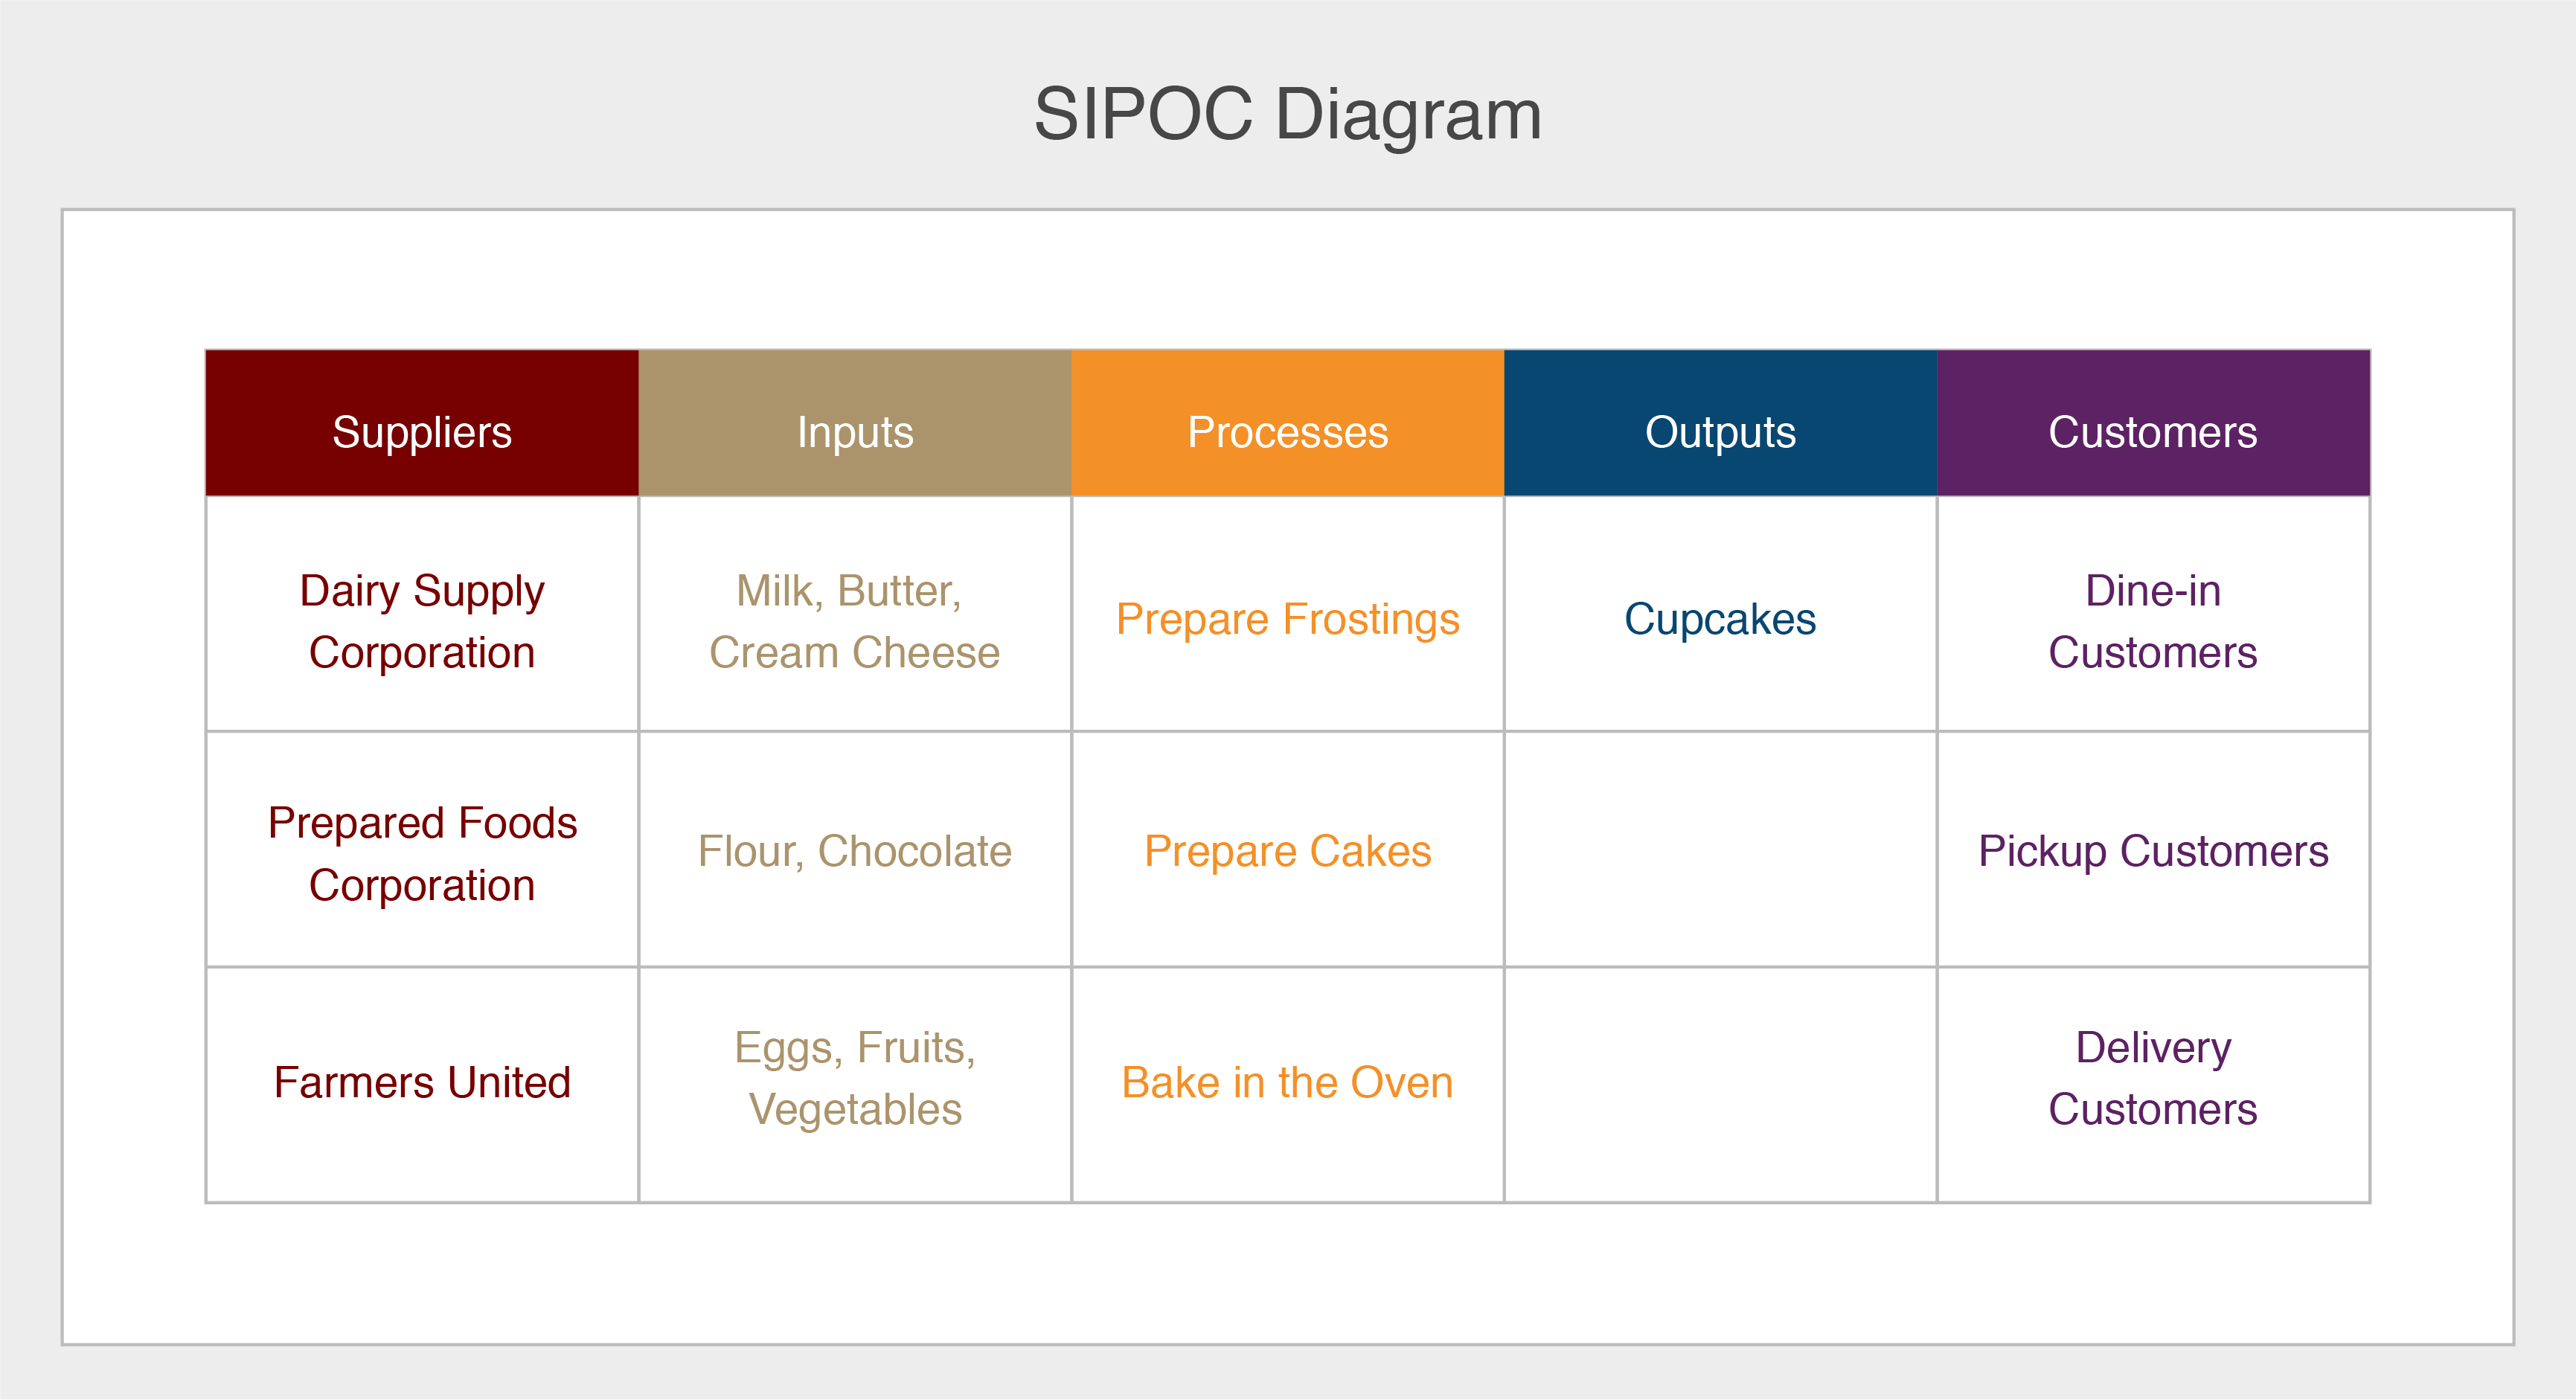 A sample SIPOC diagram showing the suppliers, inputs, processes, outputs and customers for a cupcake shop.